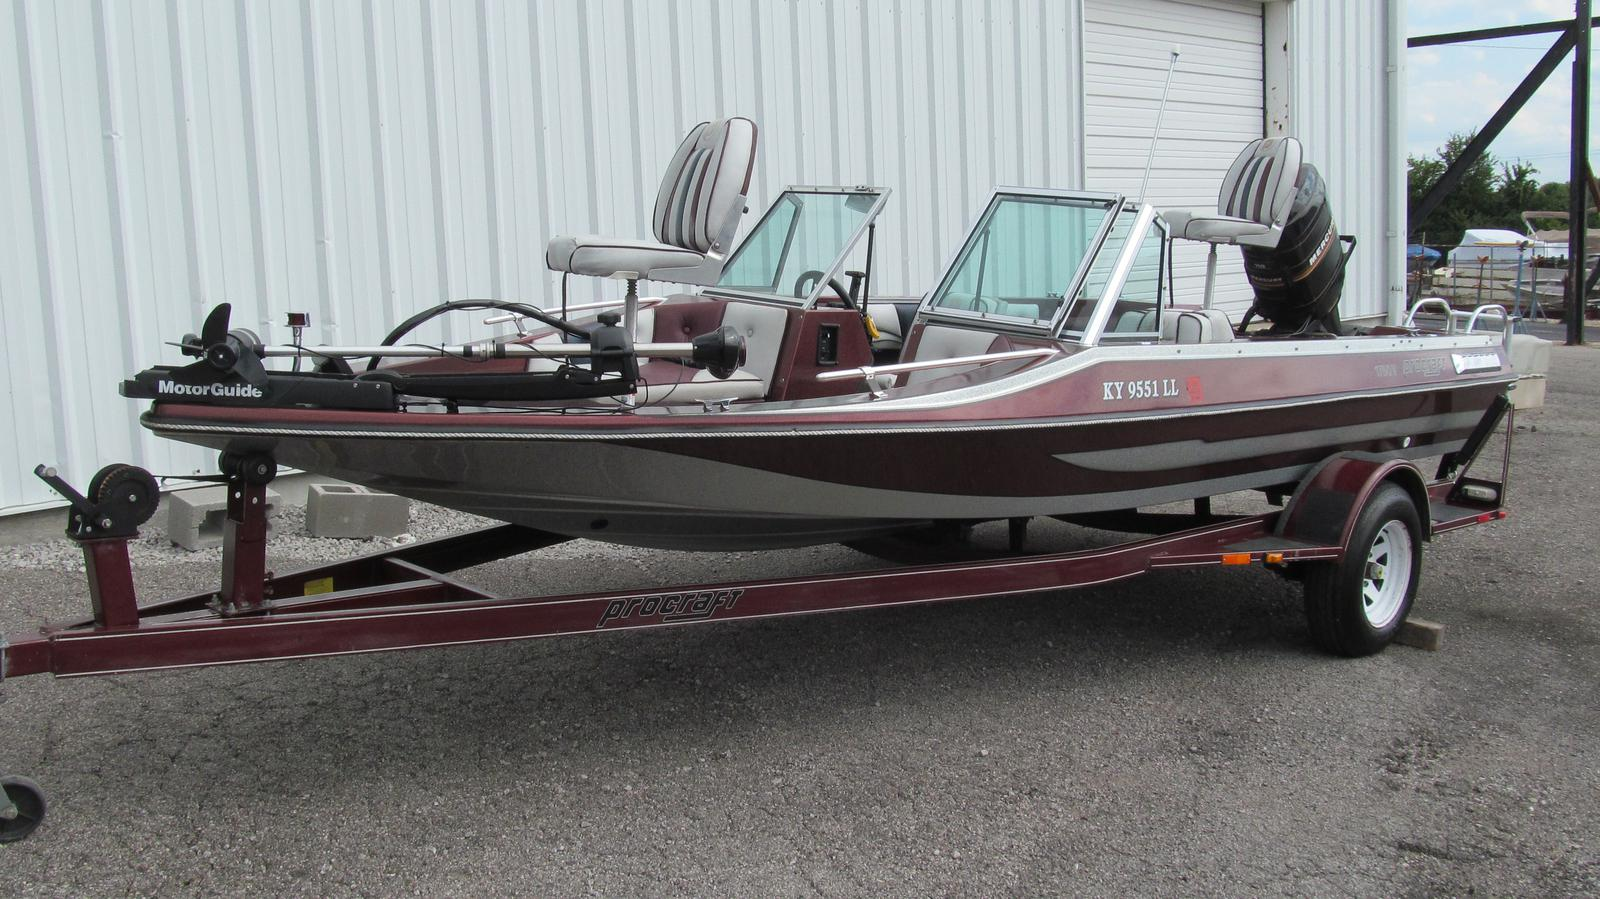 bass boats procraft bass boats rh bassboatsnaiwada blogspot com 1984 Glasstream Bass Boat 1984 Bayliner Bass Boat